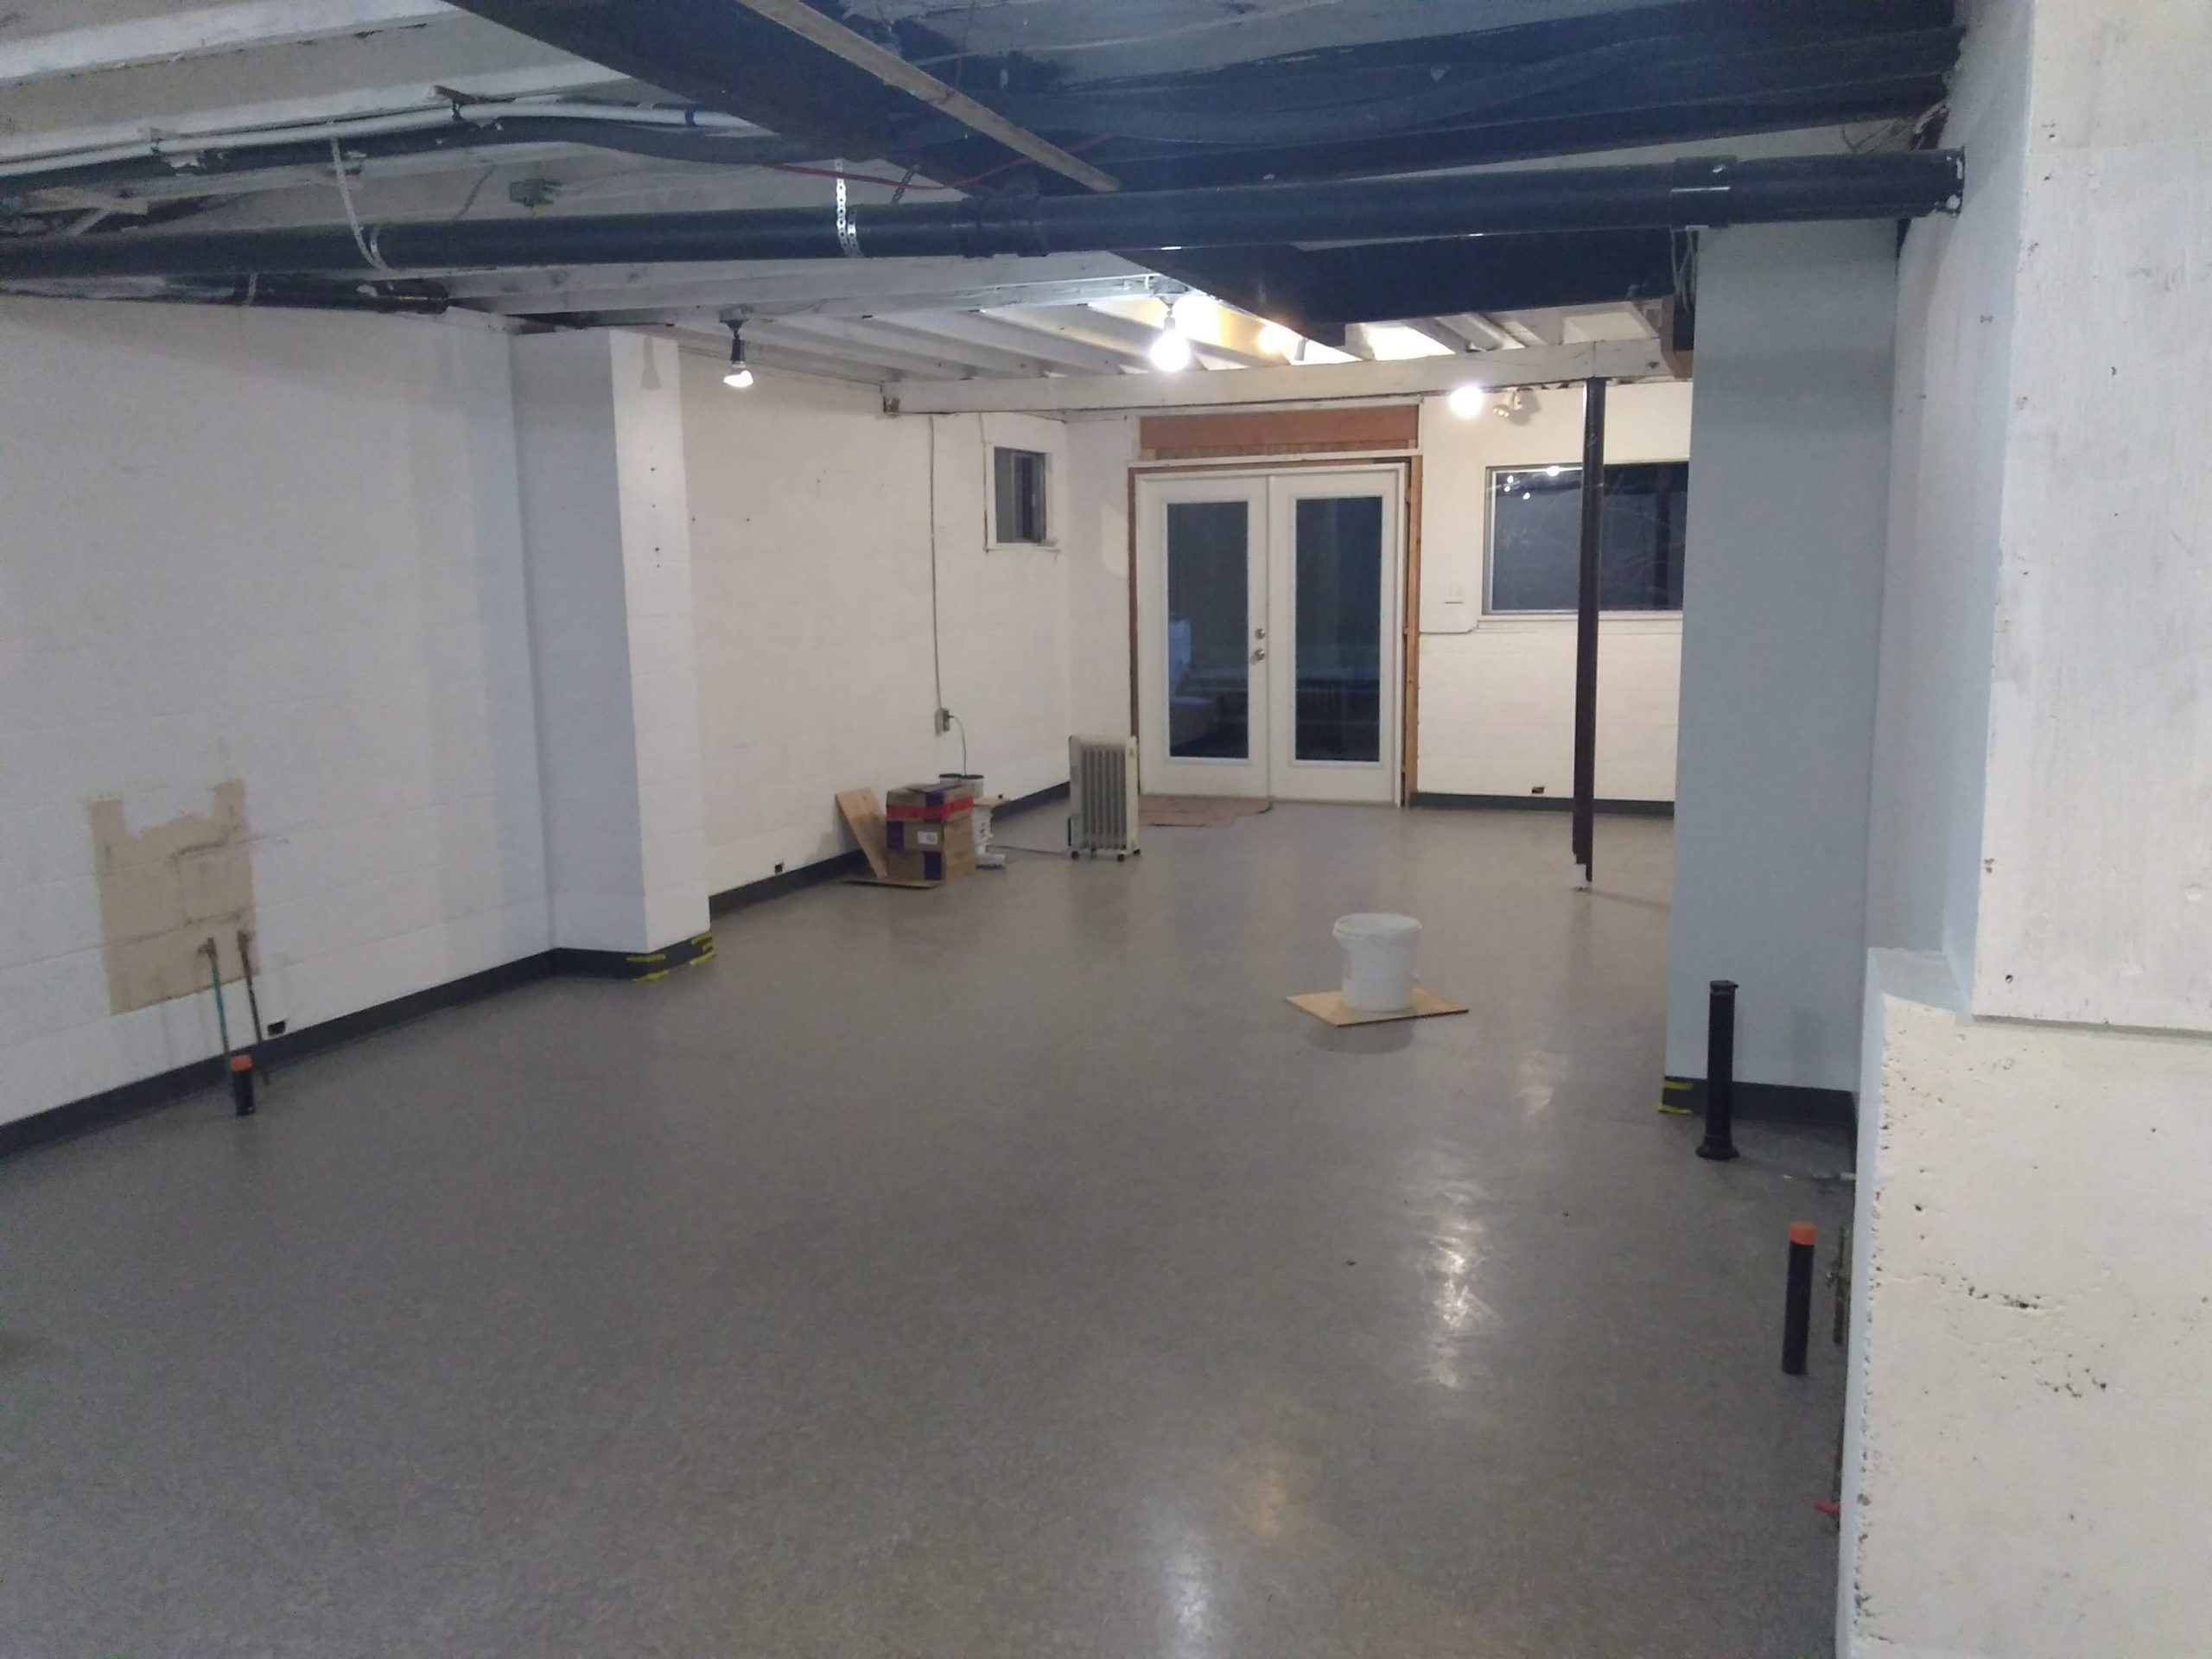 Bakery Expansion Underway